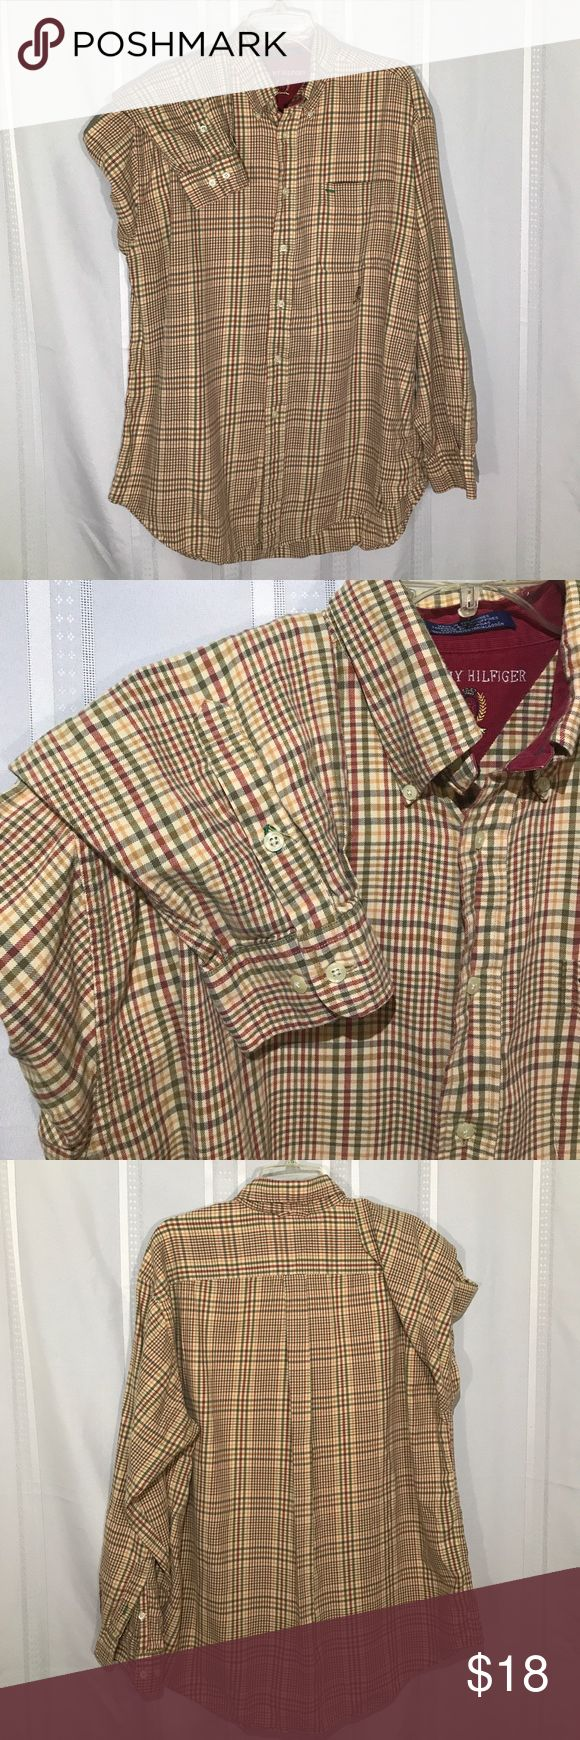 """TOMMY HILFIGER Tan/Green/Red Plaid Flannel Shirt L Warm earth tone Flannel shirt has Corduroy lined collar. Single chest pocket with embroidered insignia below. Good used condition without stains or blemishes. Length (back) 32"""", Sleeve 33-1/2"""" Tommy Hilfiger Shirts Casual Button Down Shirts"""